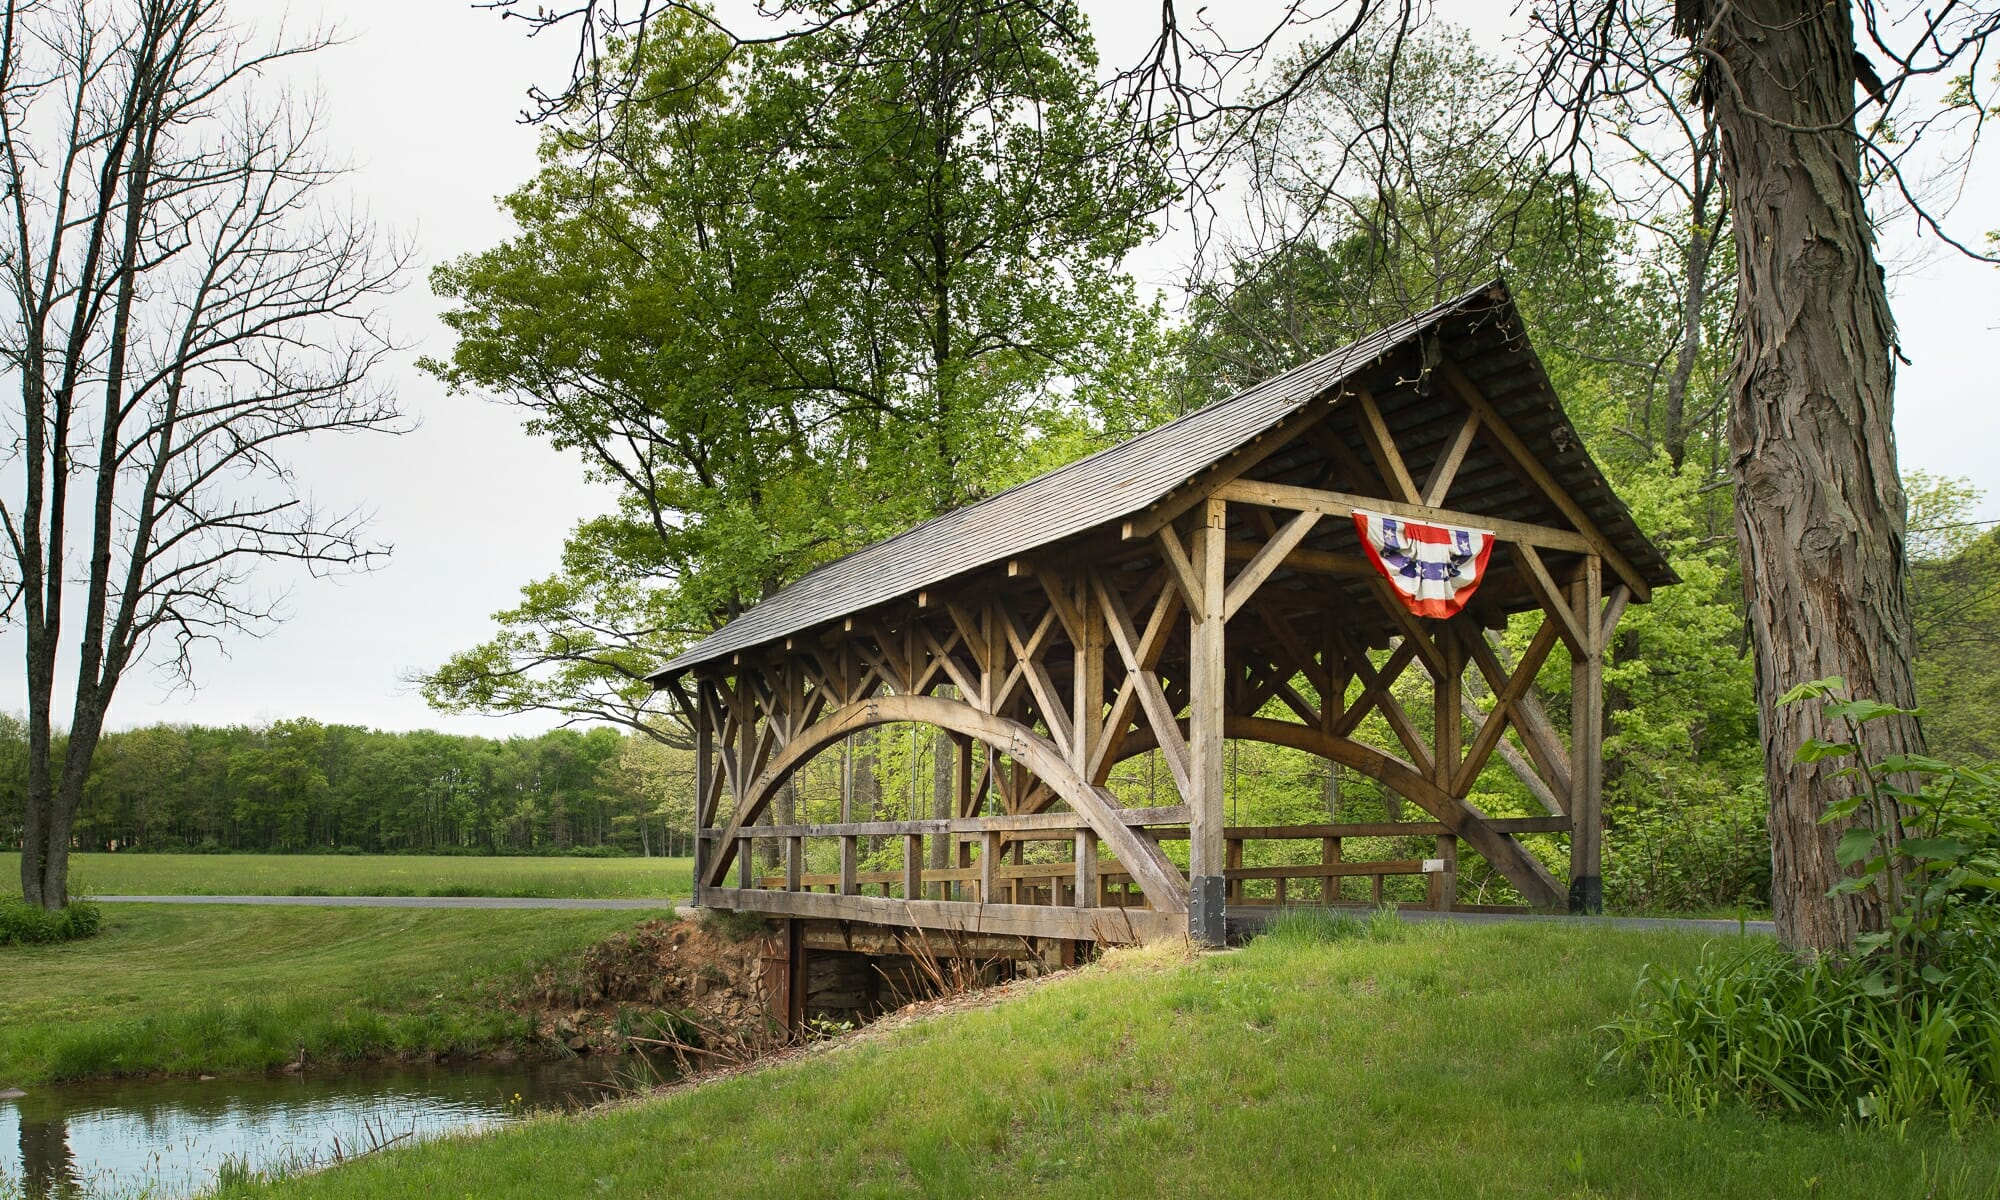 Traditional Timber Frame Covered Bridge in Vermont